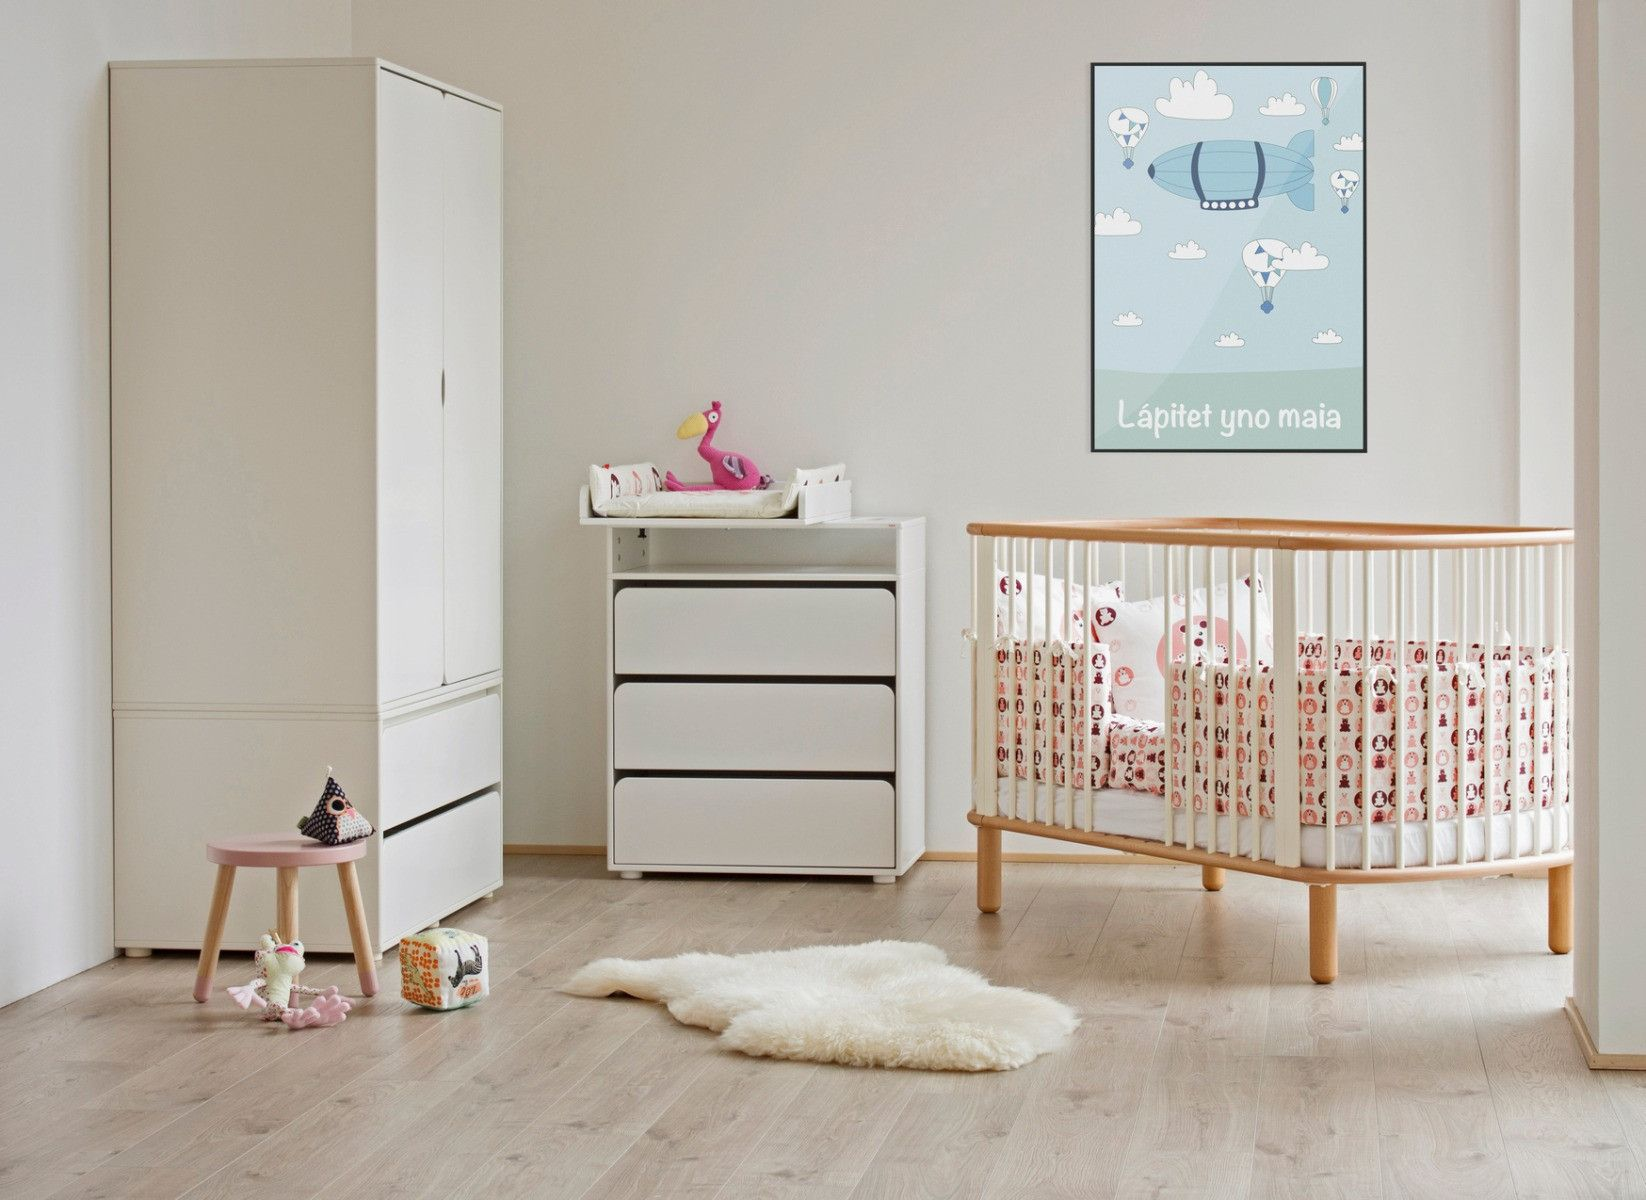 Table A Langer Avec Baignoire Ikea Table A Langer Avec Baignoire Ikea Table Langer Pour Baignoire Lo Interior Design Bedroom Kids Room Wall Small Kids Room